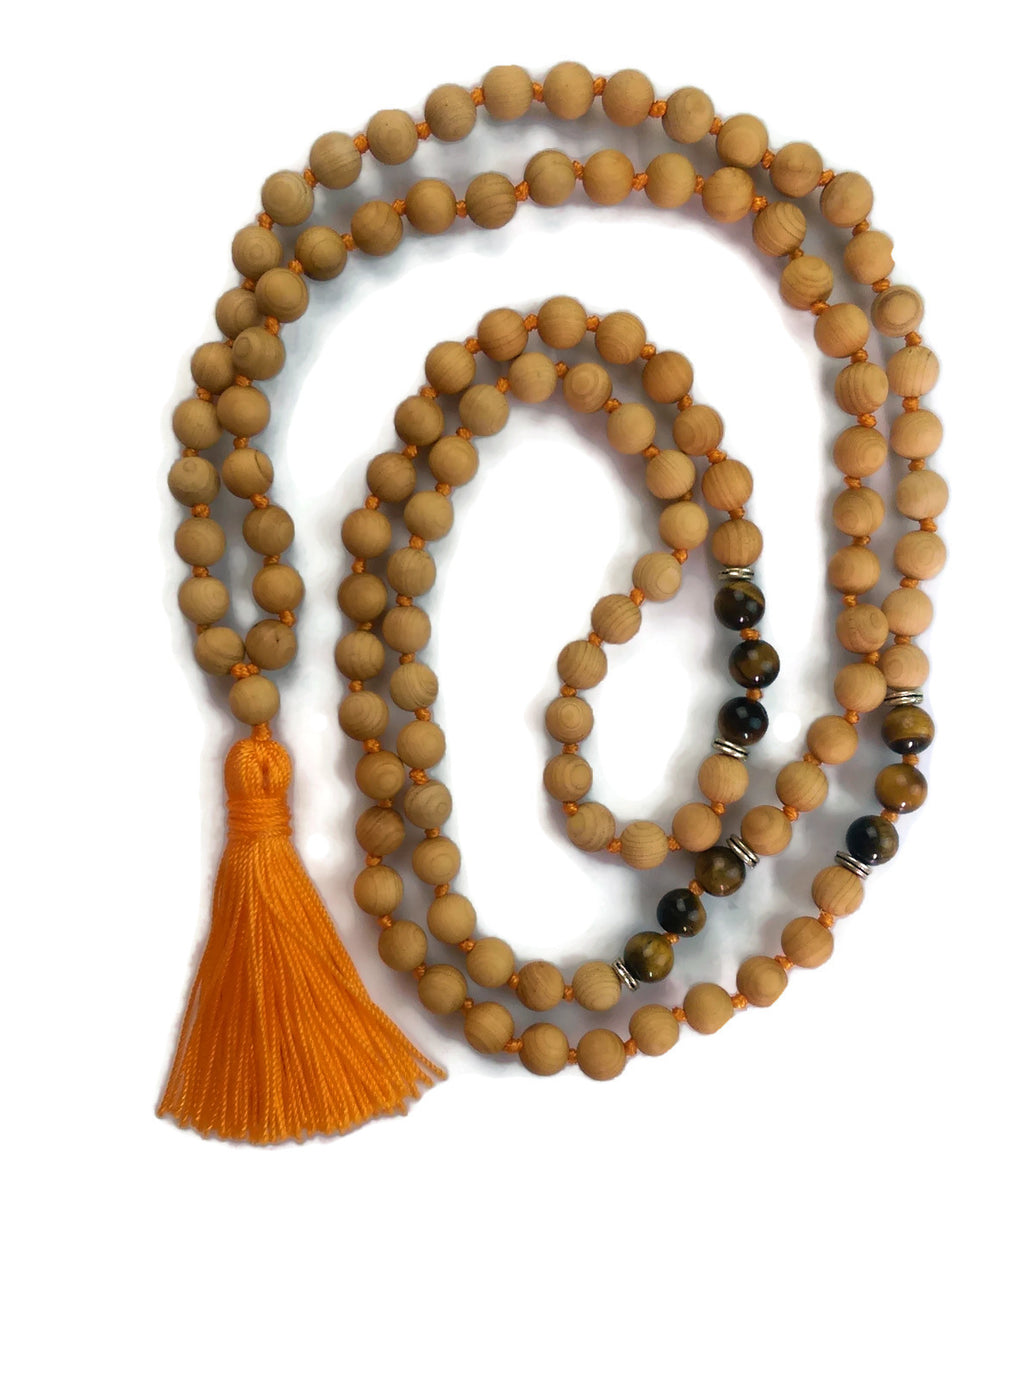 Sunset Collection 8mm Cypress Wood Bead and Tiger Eye Traditional Knotted 108 Meditation Mala Necklace | Solar Plexus Chakra